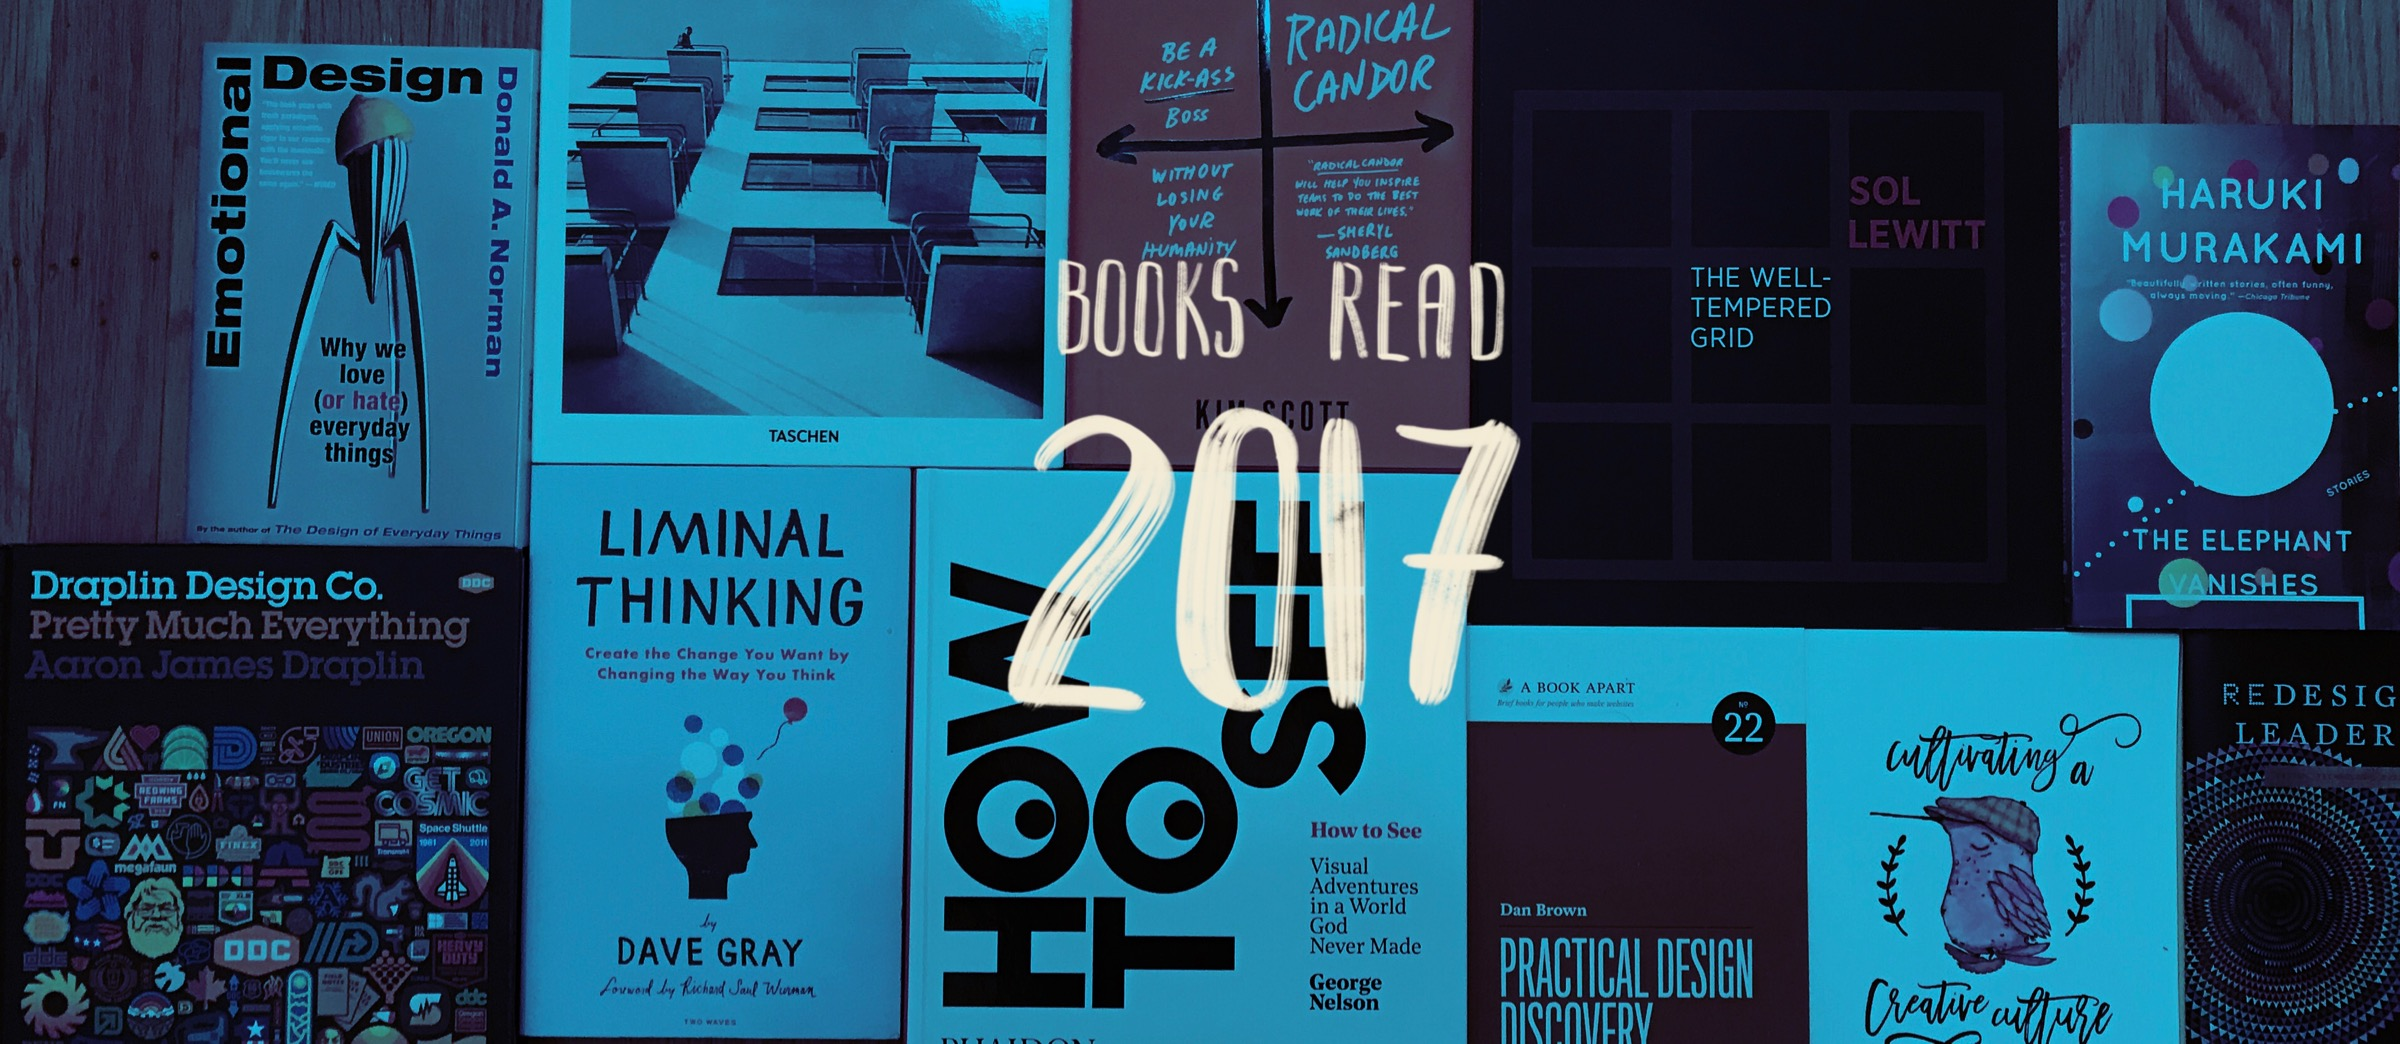 Books Read 2017 banner